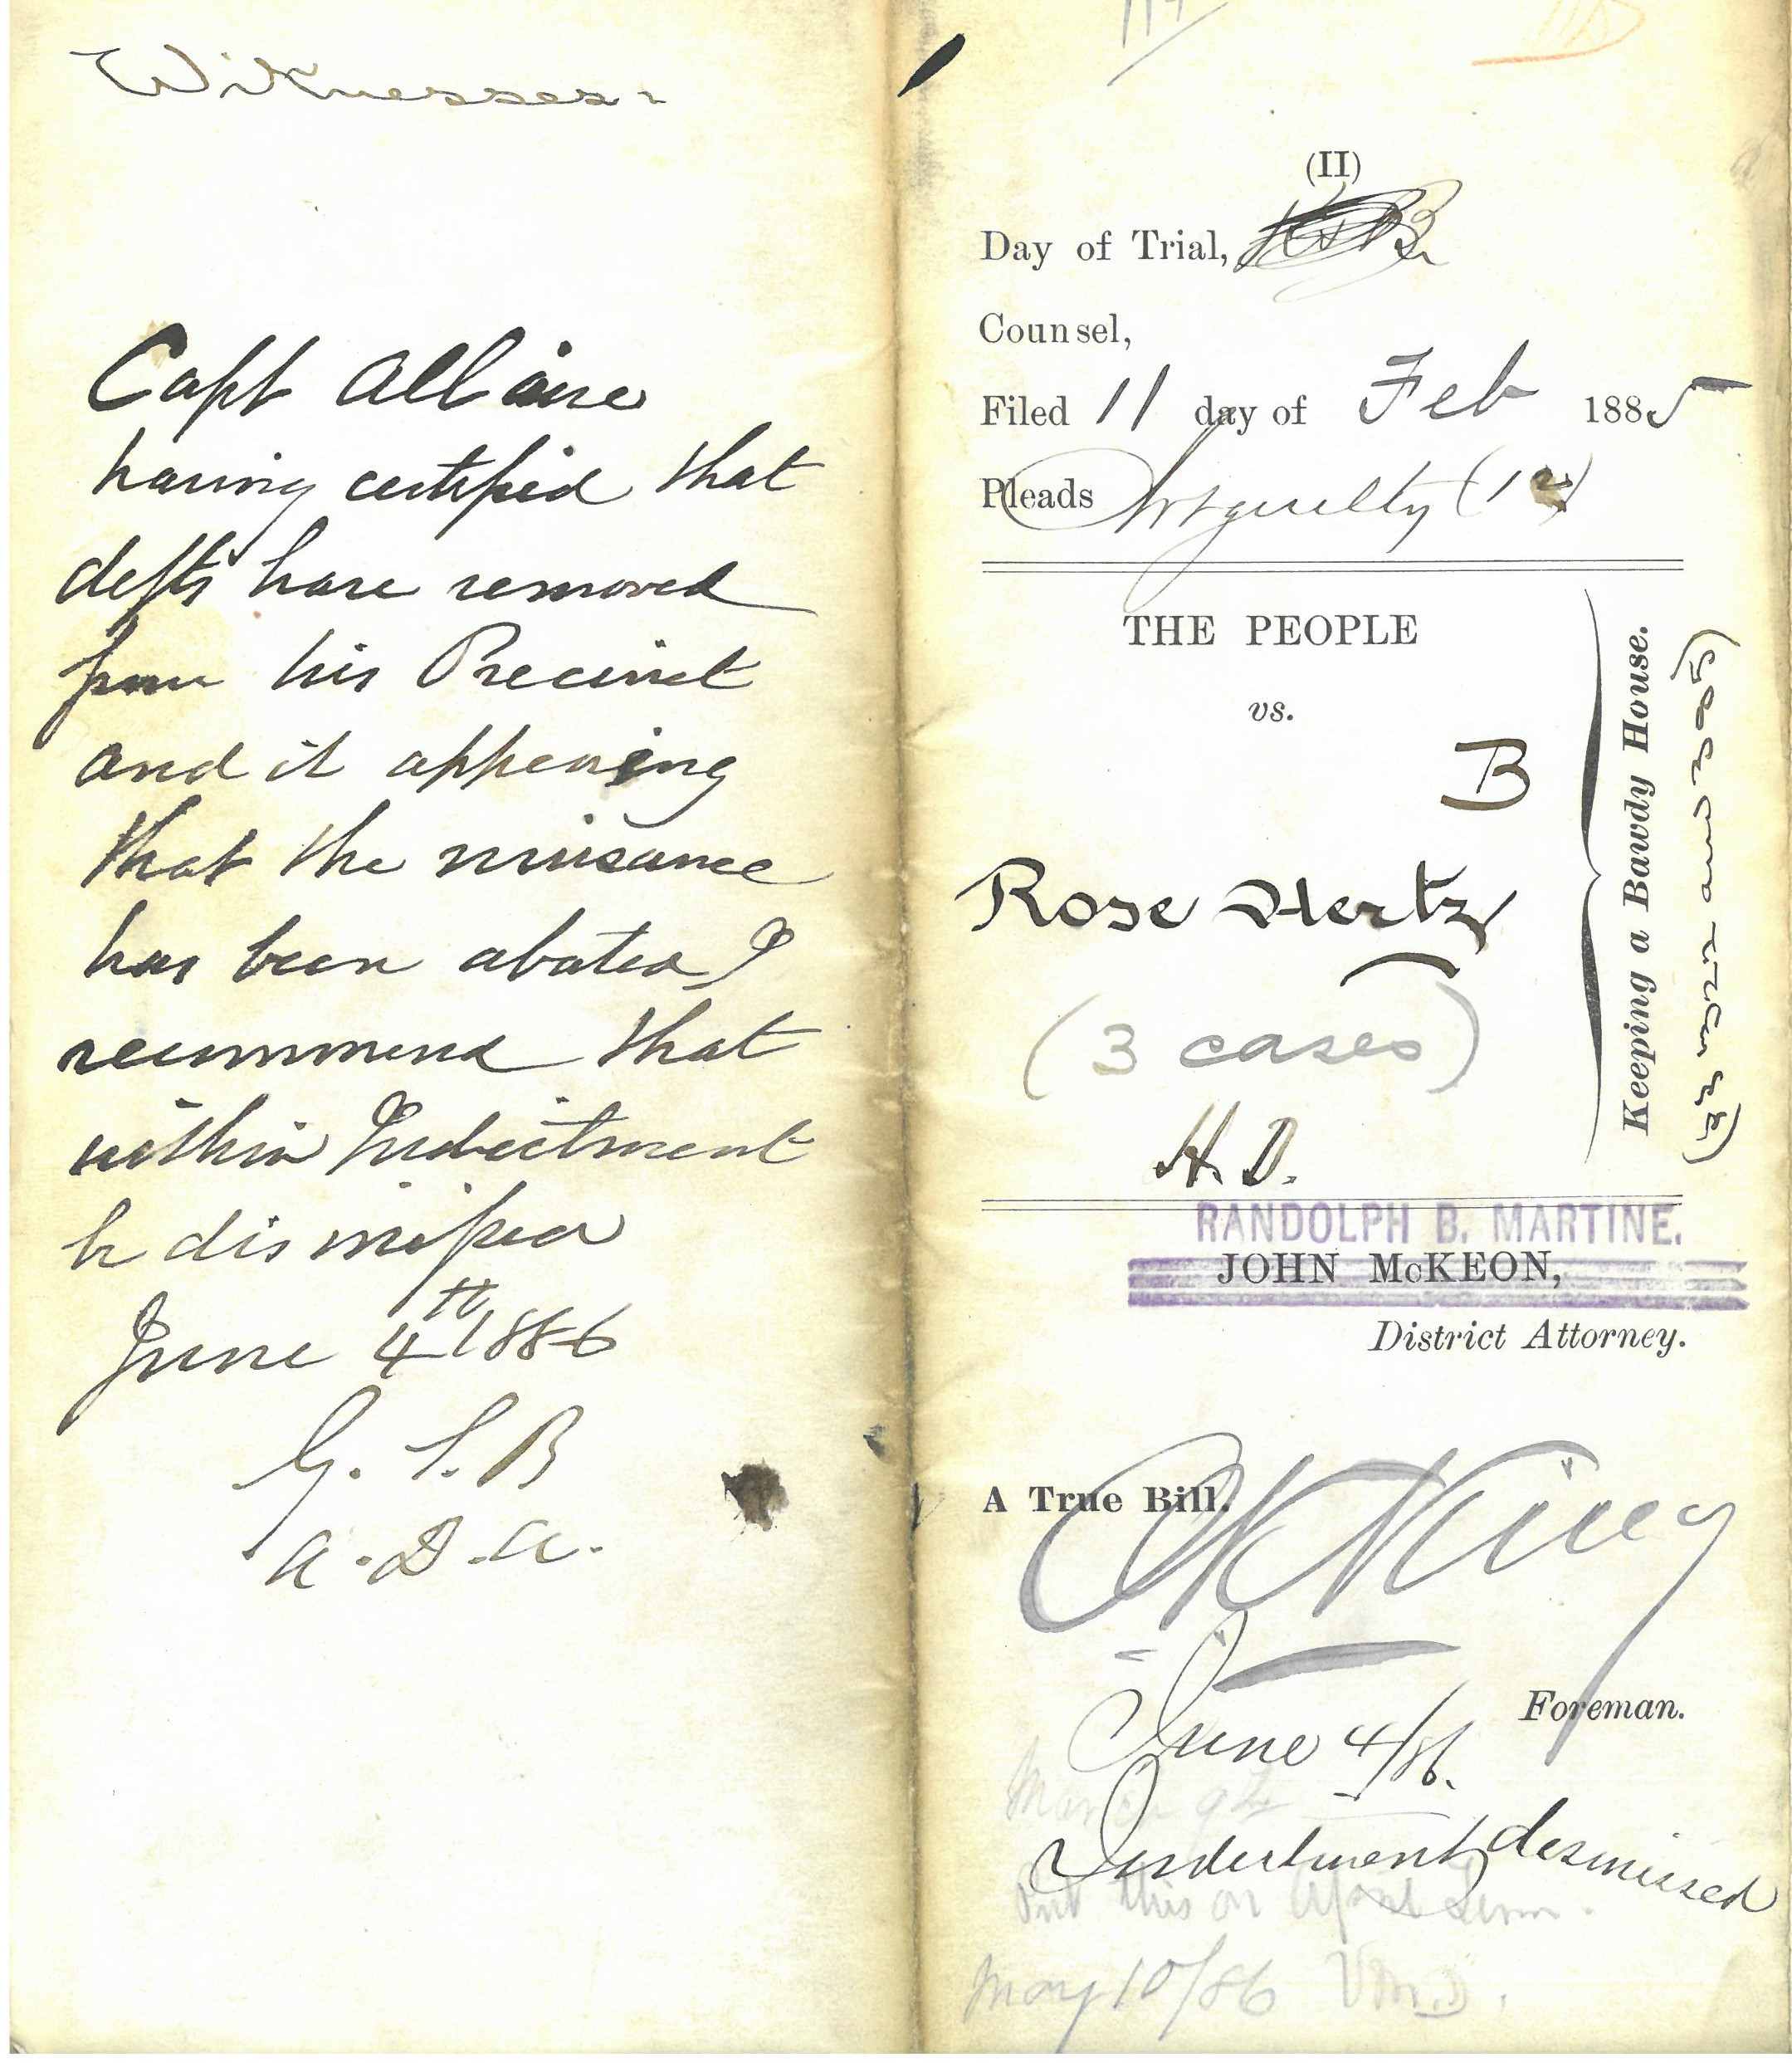 cropped Indictment - Rose Hertz 11 Feb 1885 - Ct. of Gen. Sessions Box 166 f. 1694.jpg